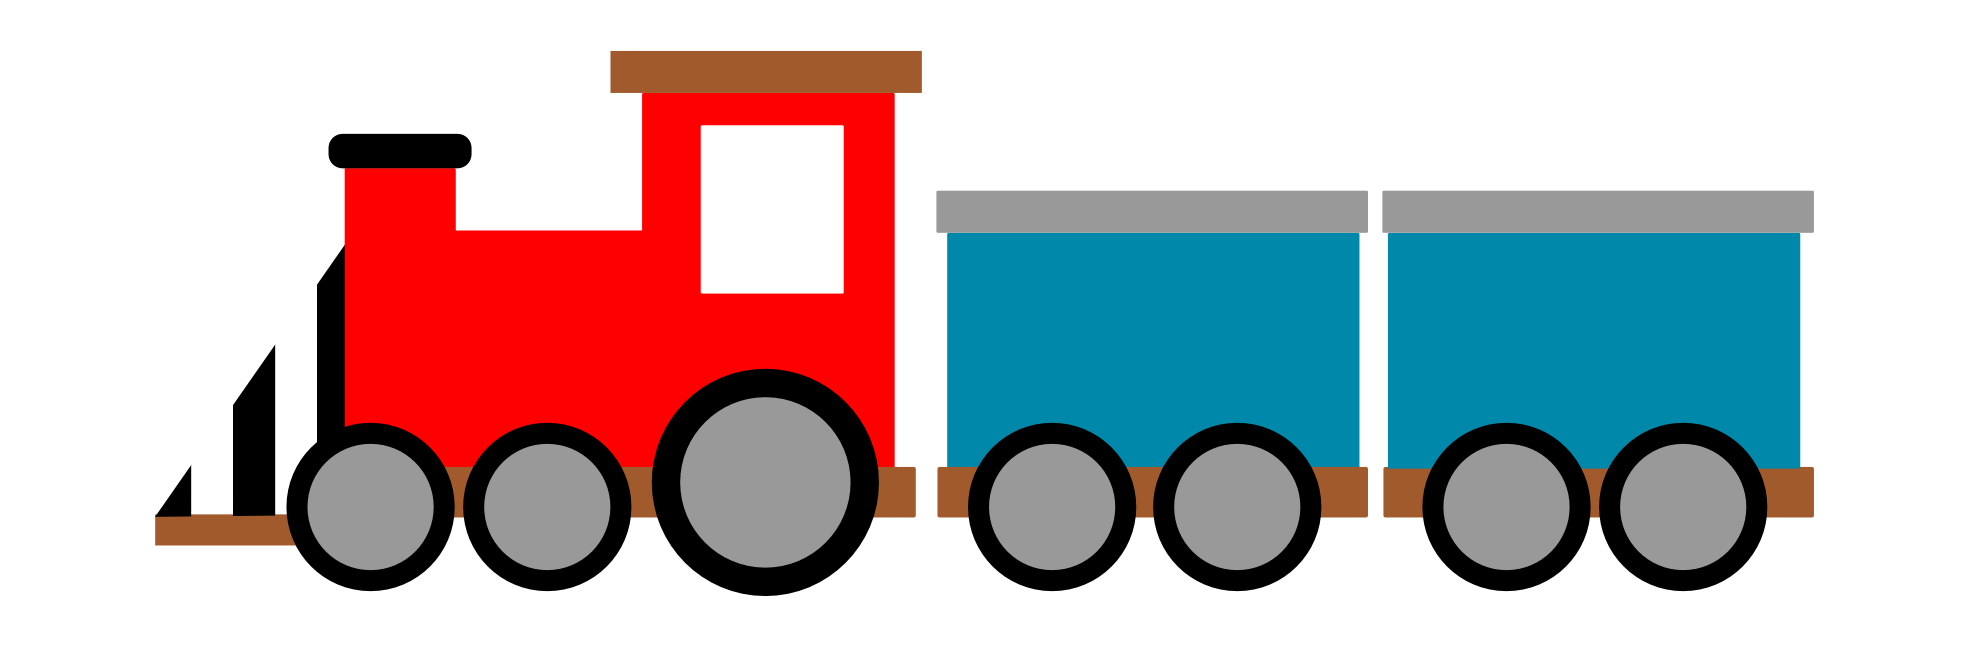 Train car silhouette clipart jpg transparent Train For Drawing at GetDrawings.com | Free for personal use Train ... jpg transparent